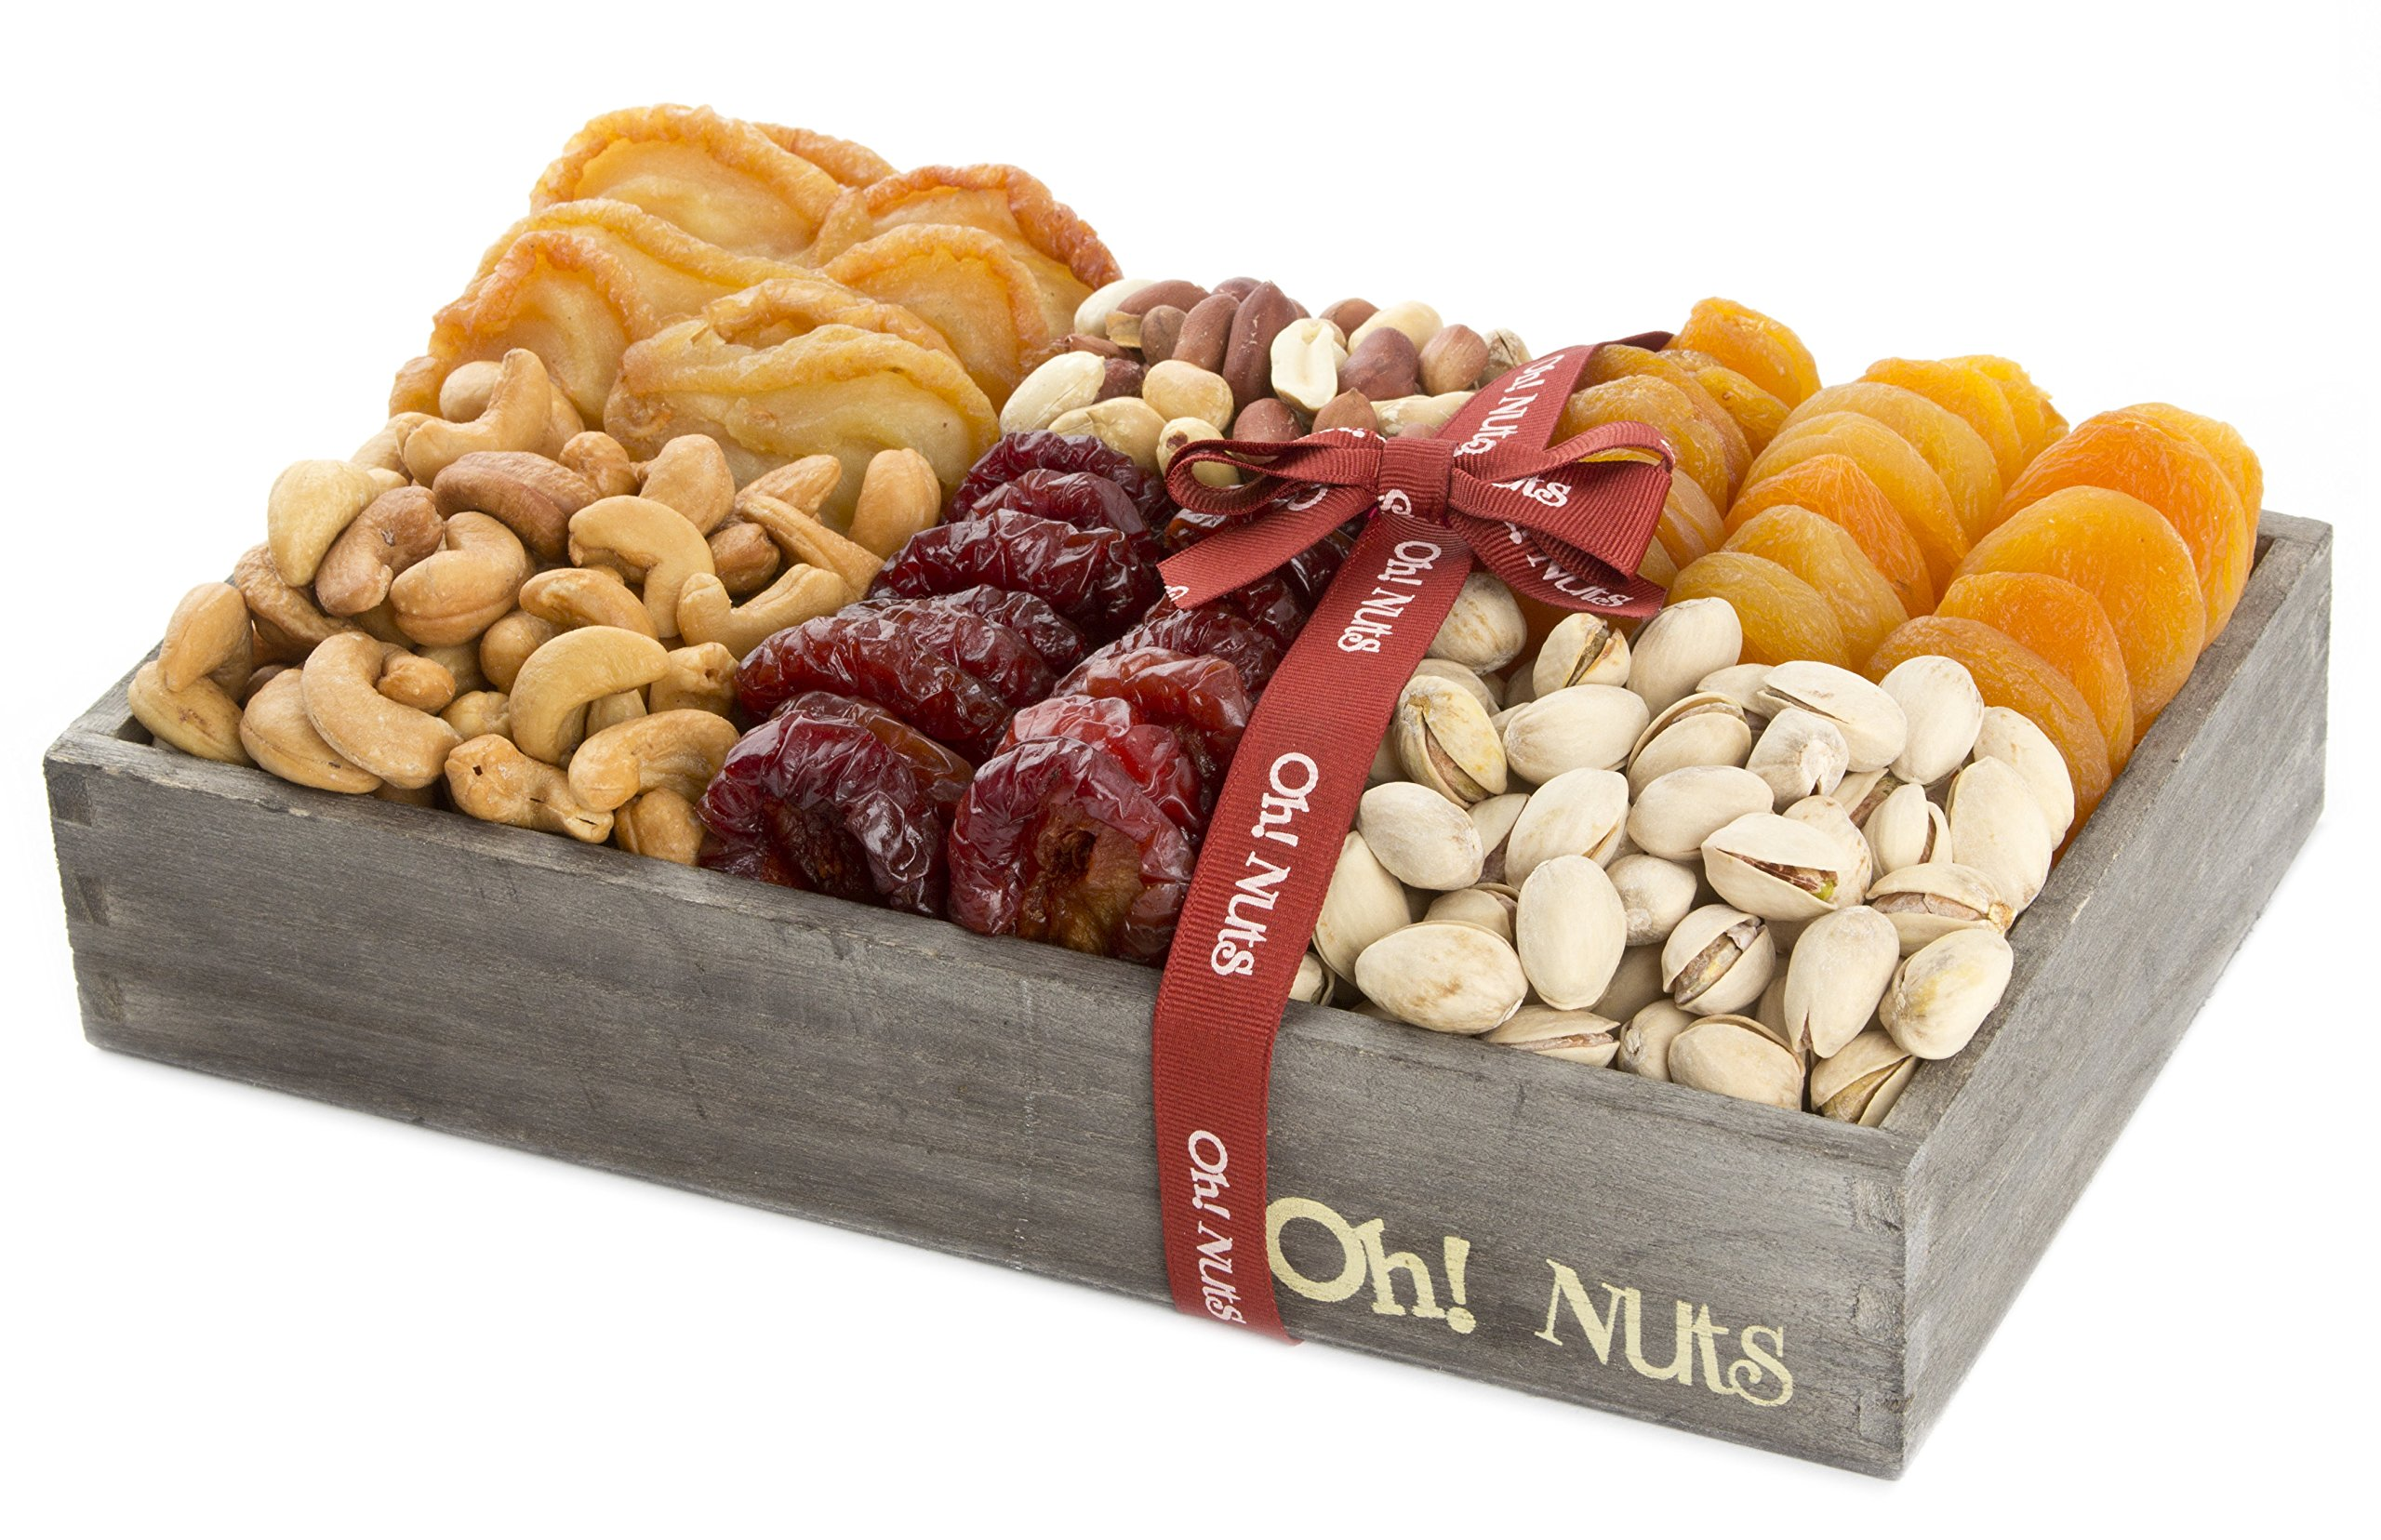 Nuts and Fruit Gift Healthy Baskets, Assortment gifts, Great as a Corporate Gift Basket or Gift any Occasion - Oh! Nuts (Deluxe Fruit and Nuts Gift)